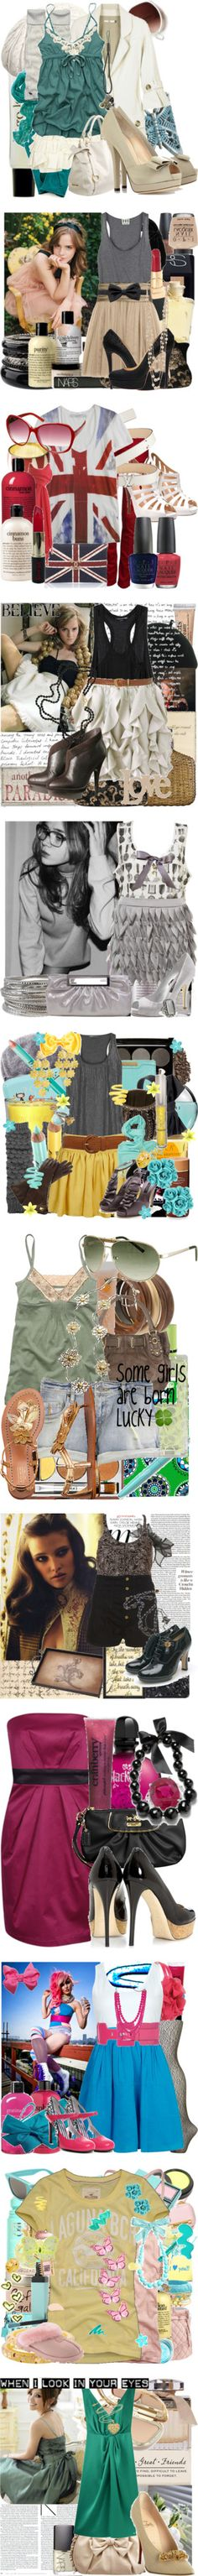 """Old Sets that I'm Proud Of"" by sweetart1699 ❤ liked on Polyvore"